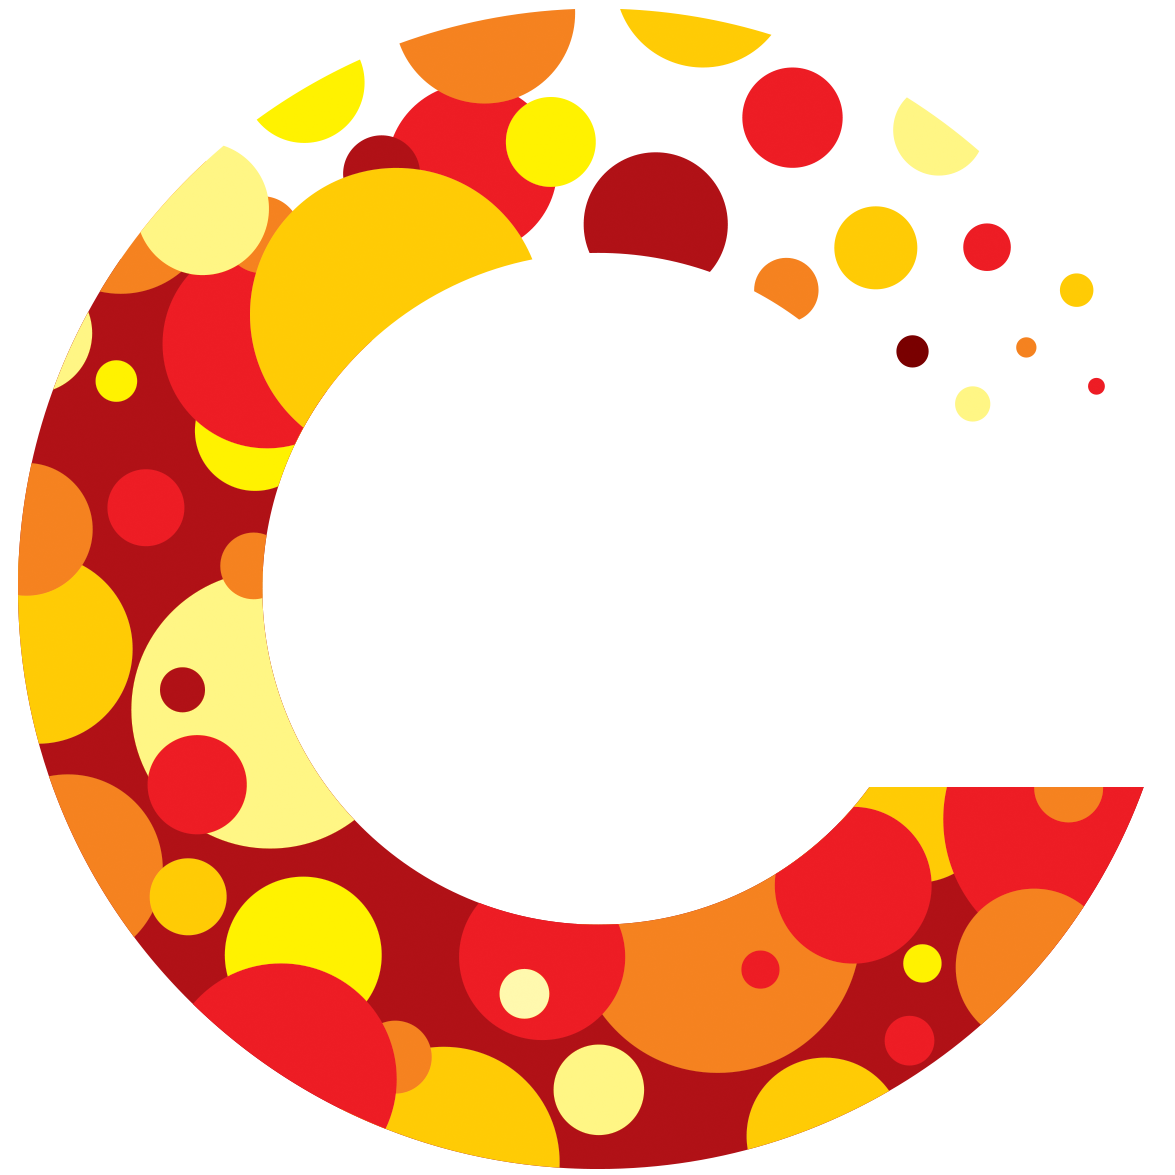 Ignite Alliance Business Partners